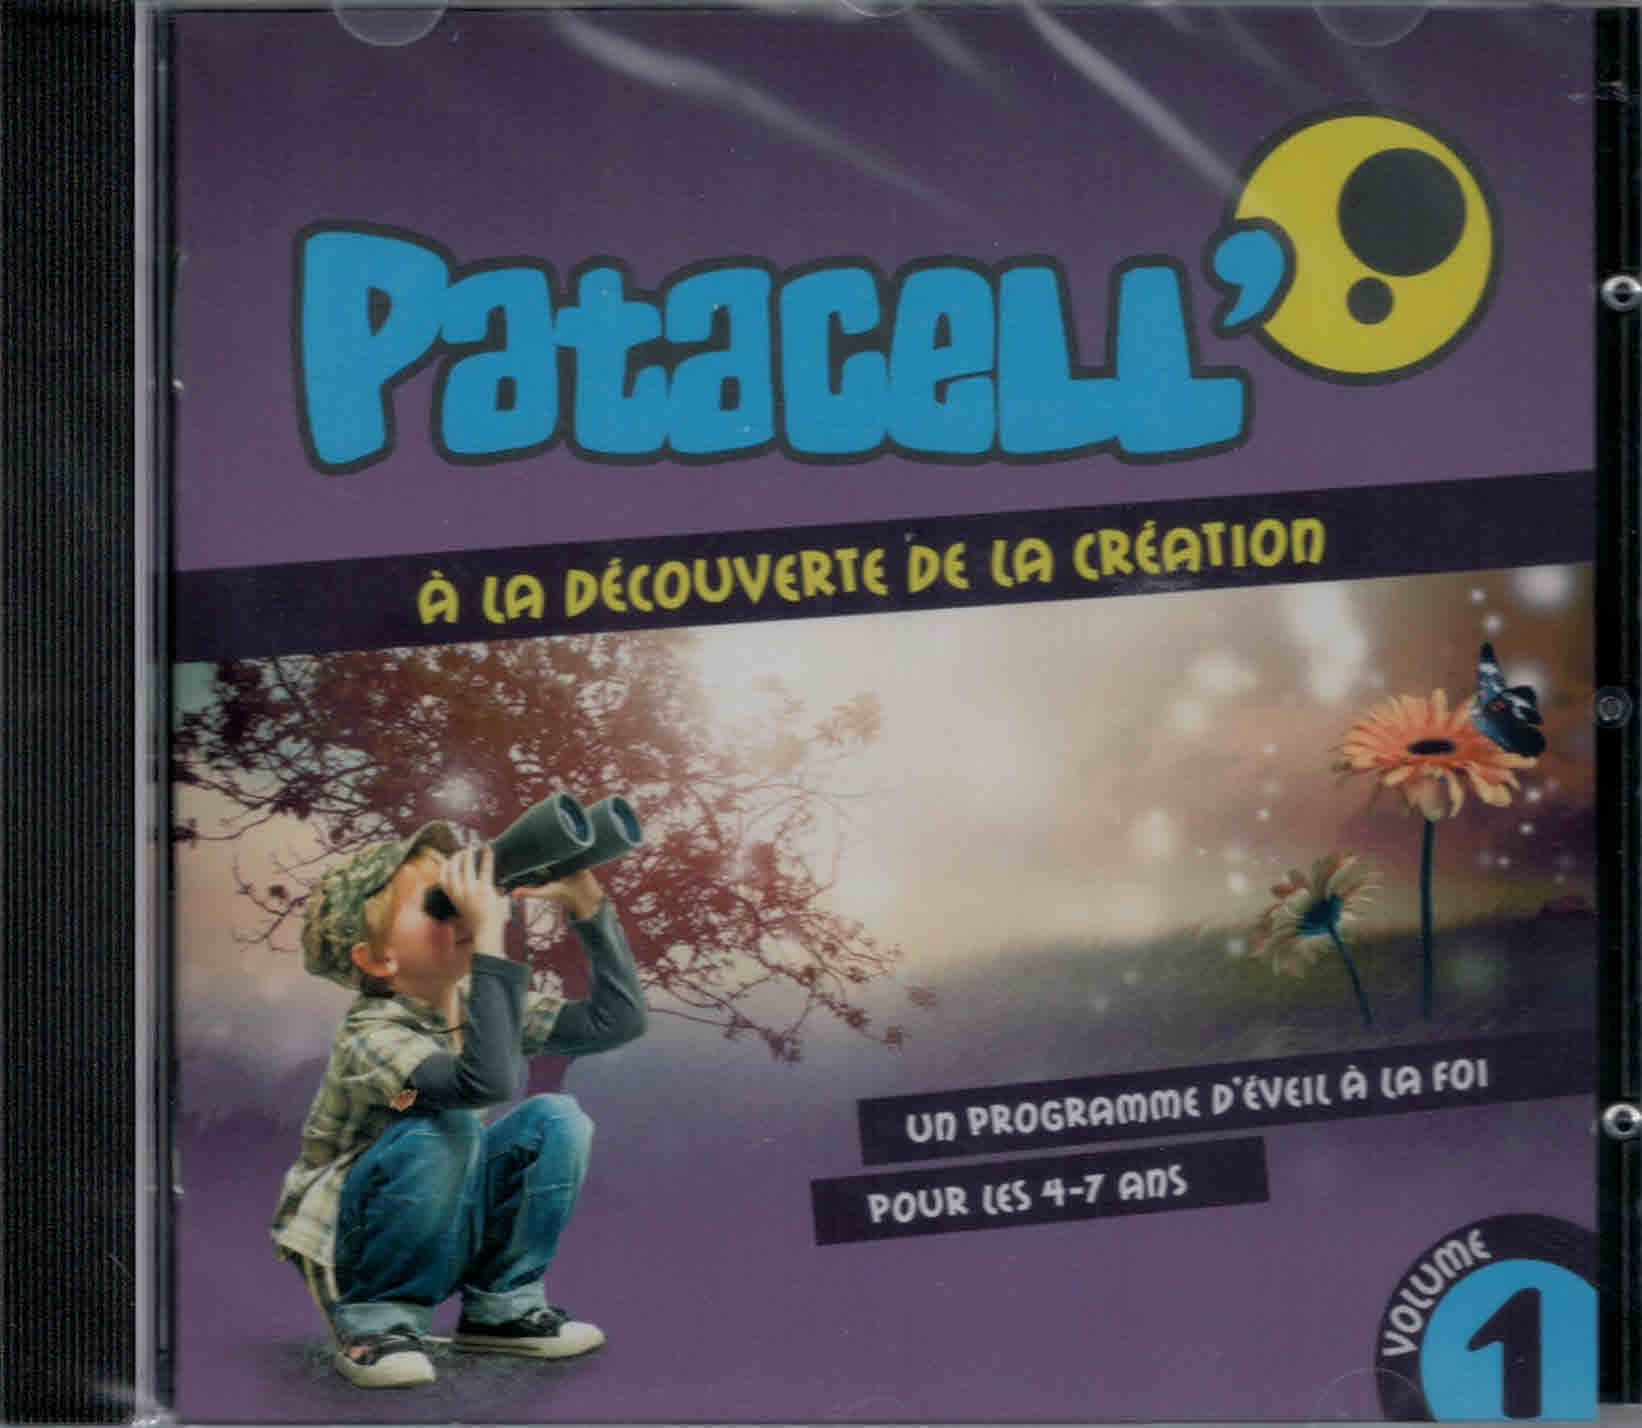 CD Patacell volume 1